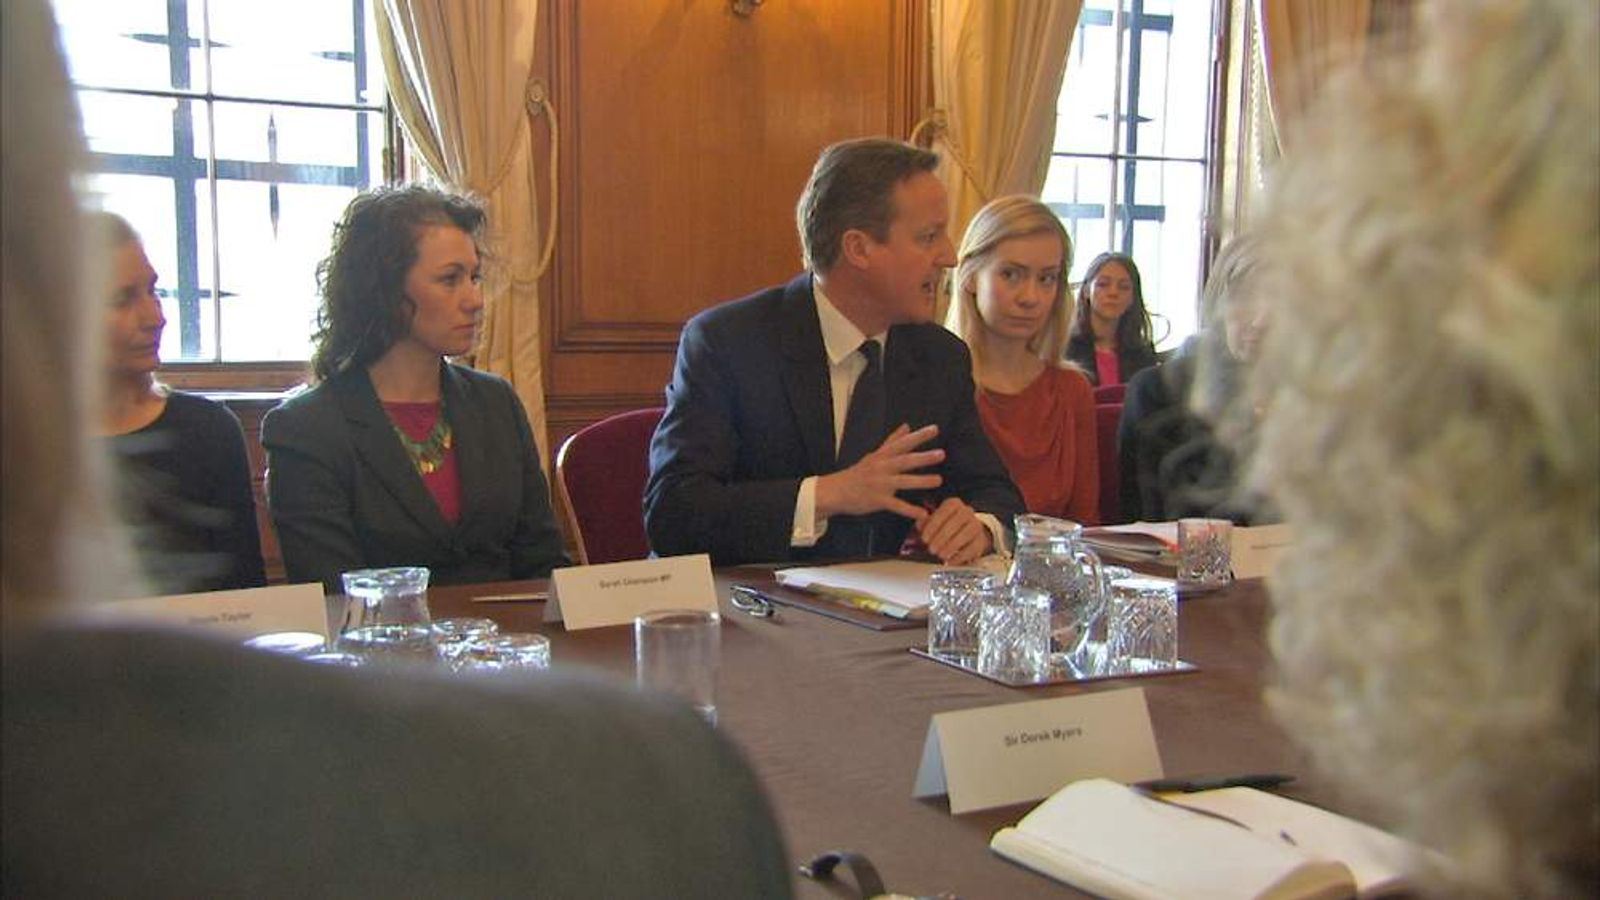 PM Meets Politicians and officials at Downing Street